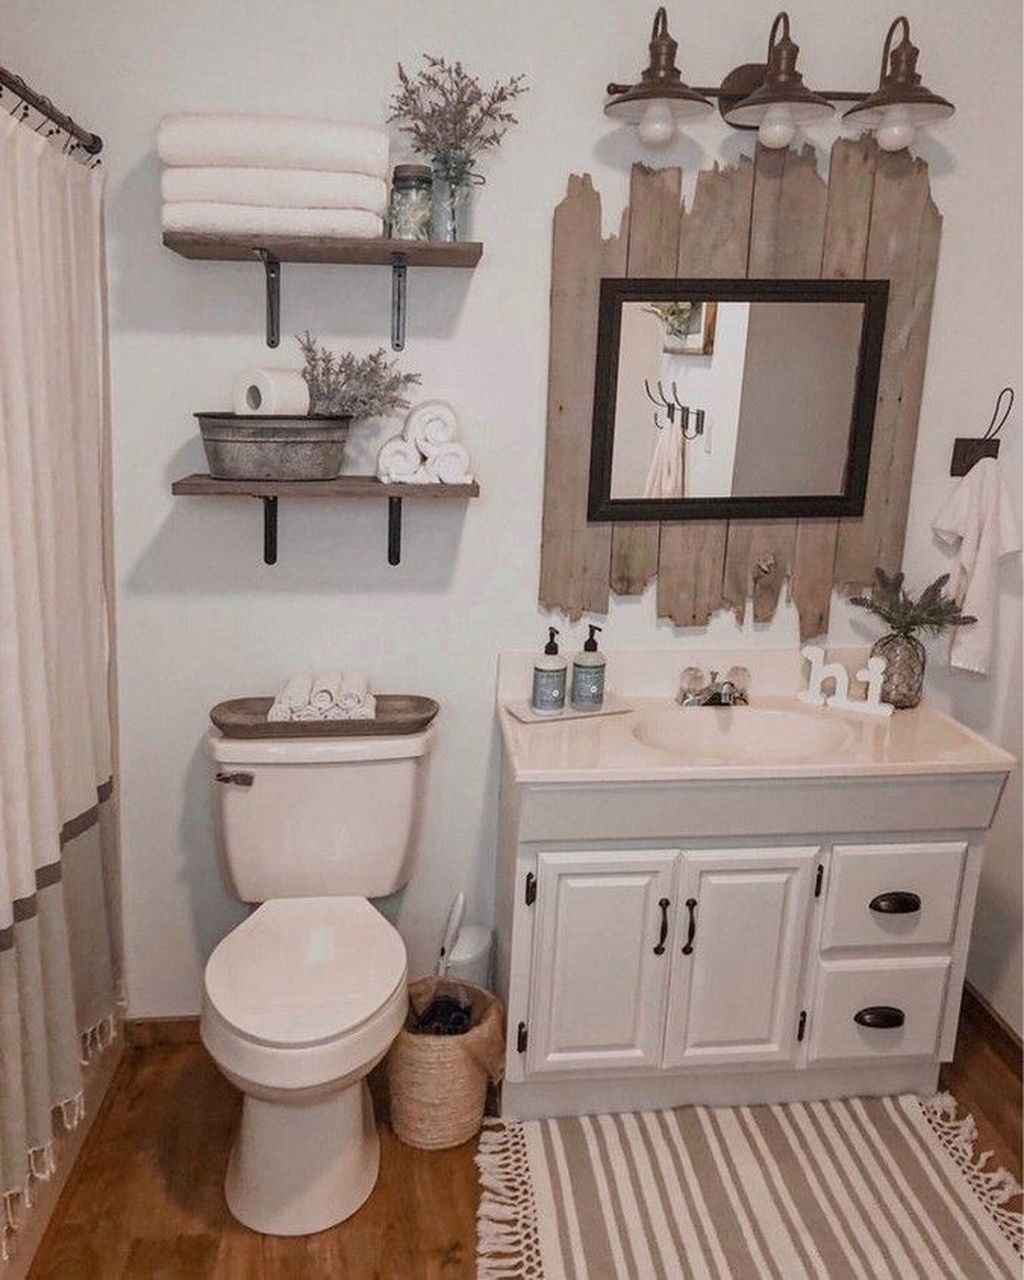 Rustikale Bäder Bathroom Decor Pottery Barn #bathroom Decor Examples #bathroom Decor Flowers #bathroom Wall… | Rustikales Badezimmer Dekor, Kleines Bad Dekorieren, Rustikale Bäder